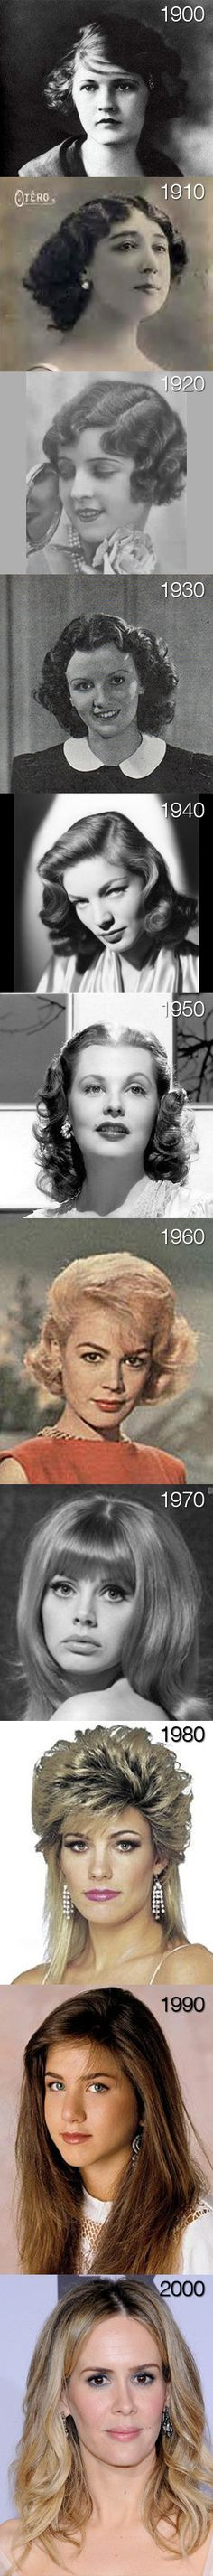 Women over the Decades. S)